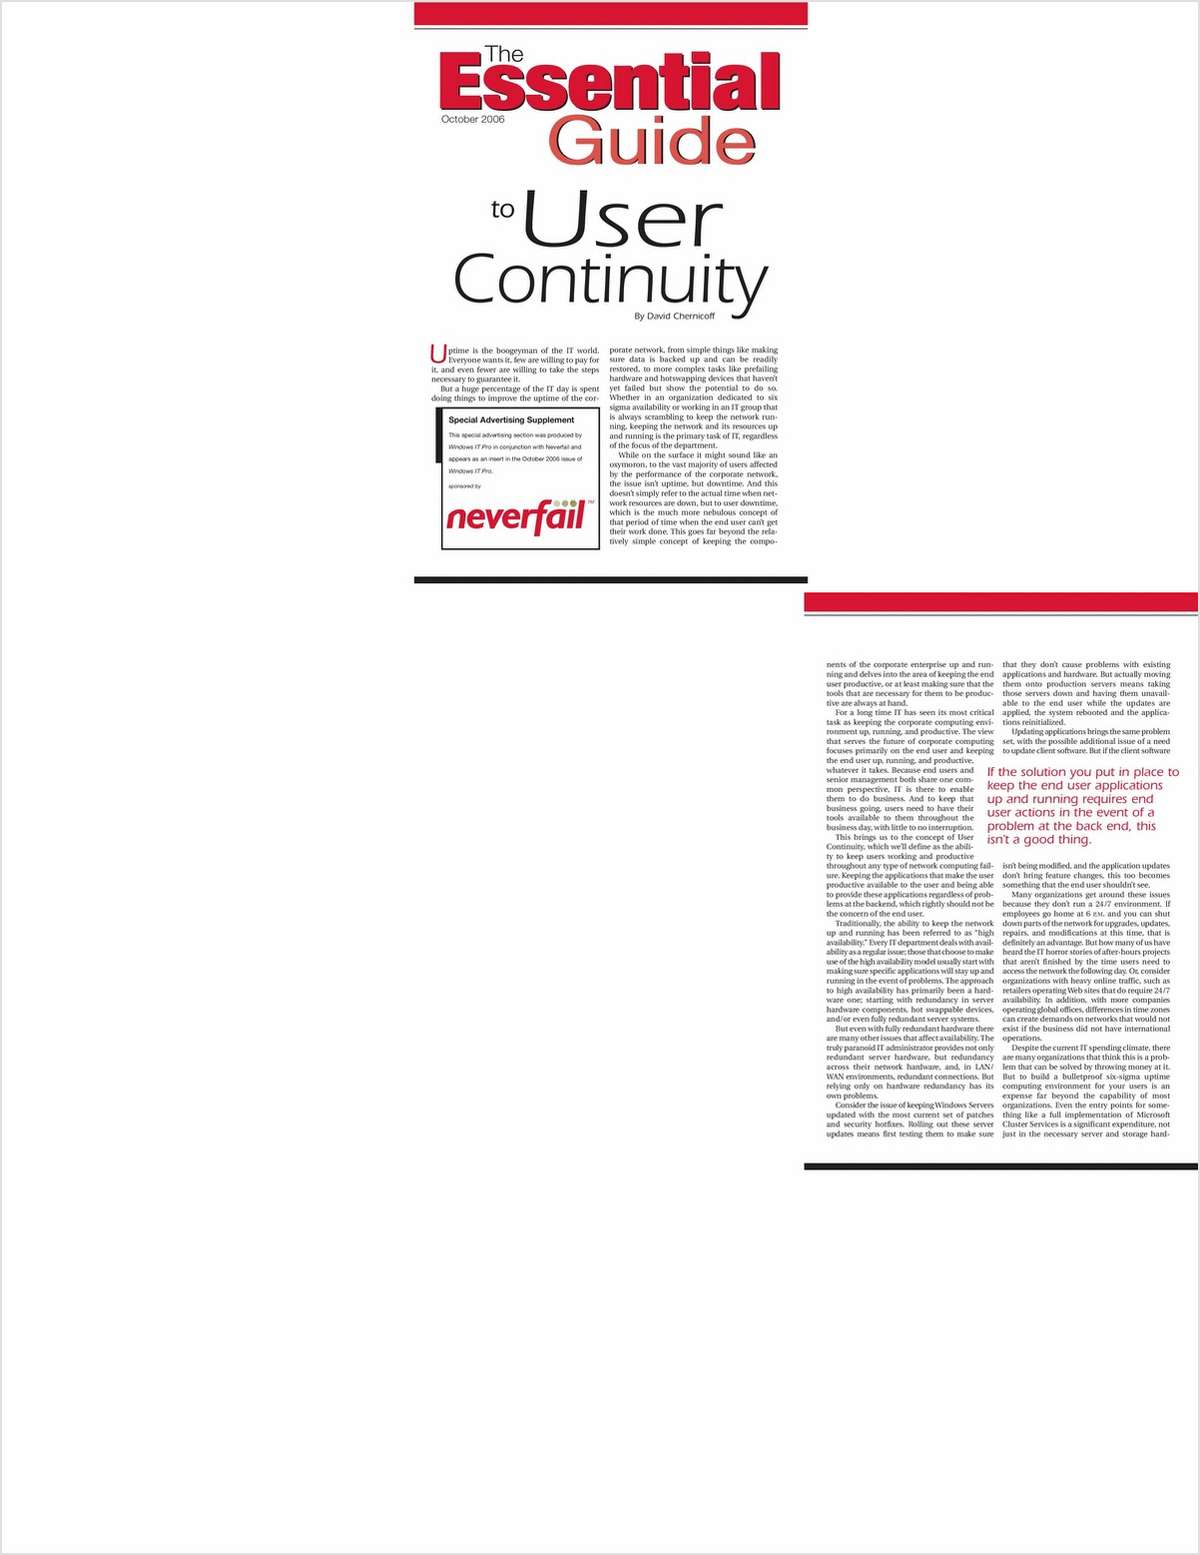 Essential Guide to User Continuity